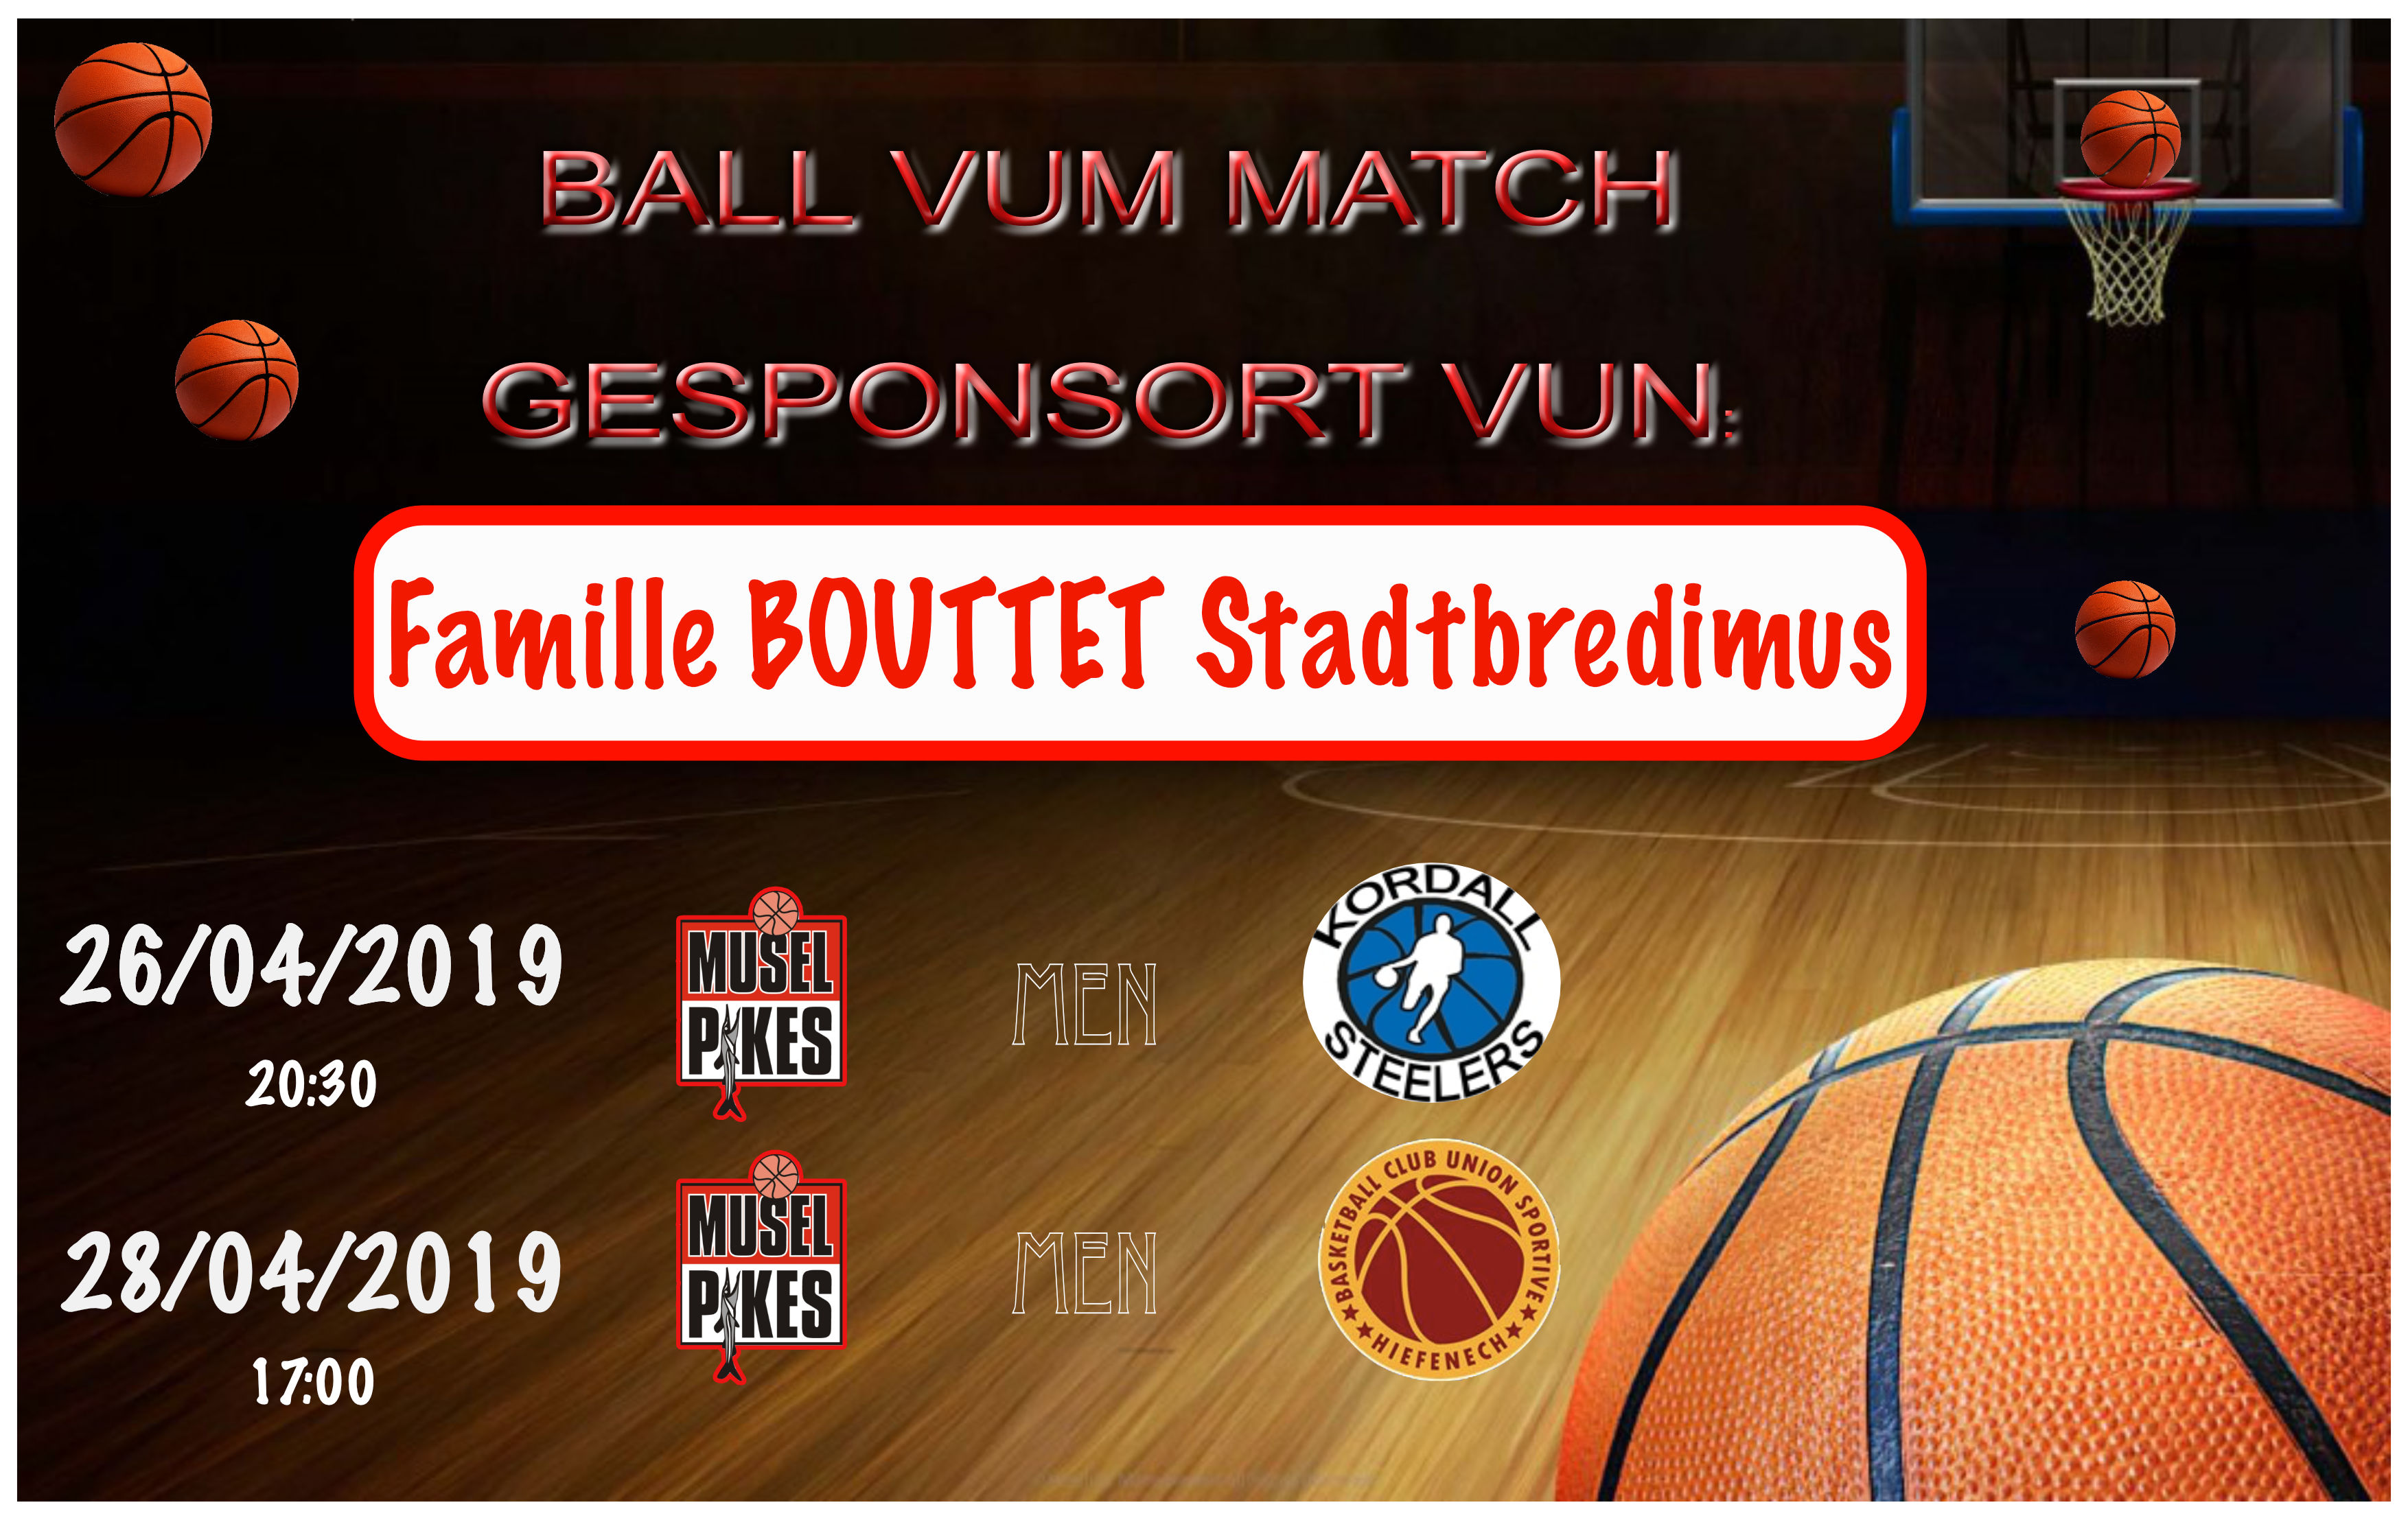 Ball vum weekend 26+28/04/19